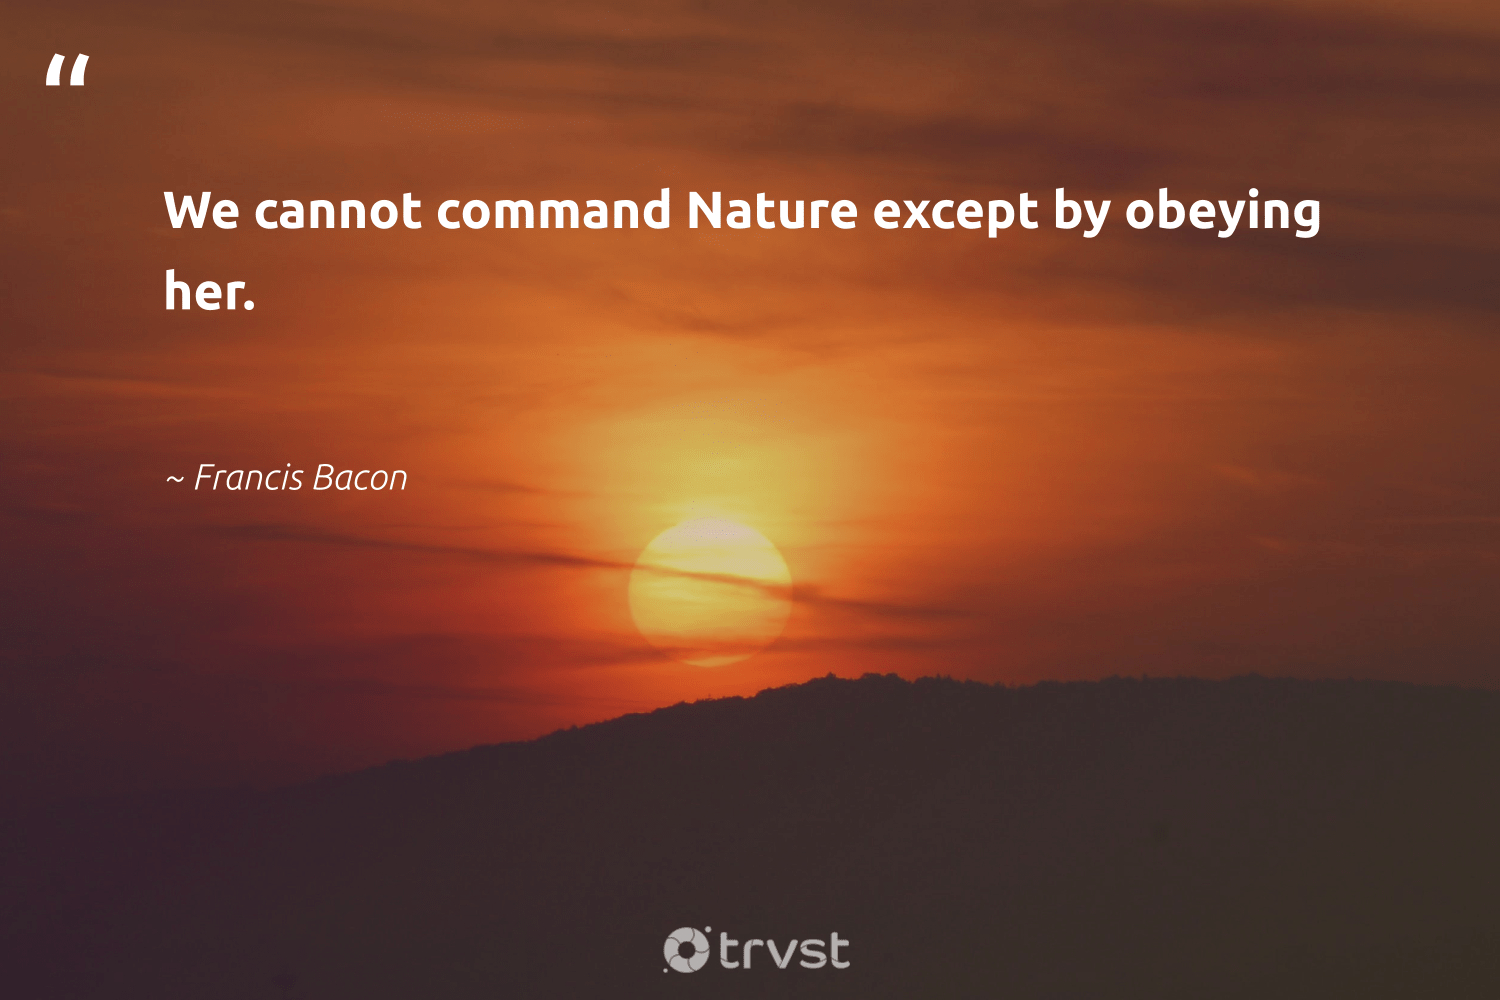 """""""We cannot command Nature except by obeying her.""""  - Francis Bacon #trvst #quotes #environment #nature #conservation #getoutside #environmentallyfriendly #gogreen #planet #ecofriendly #sustainable #socialchange"""